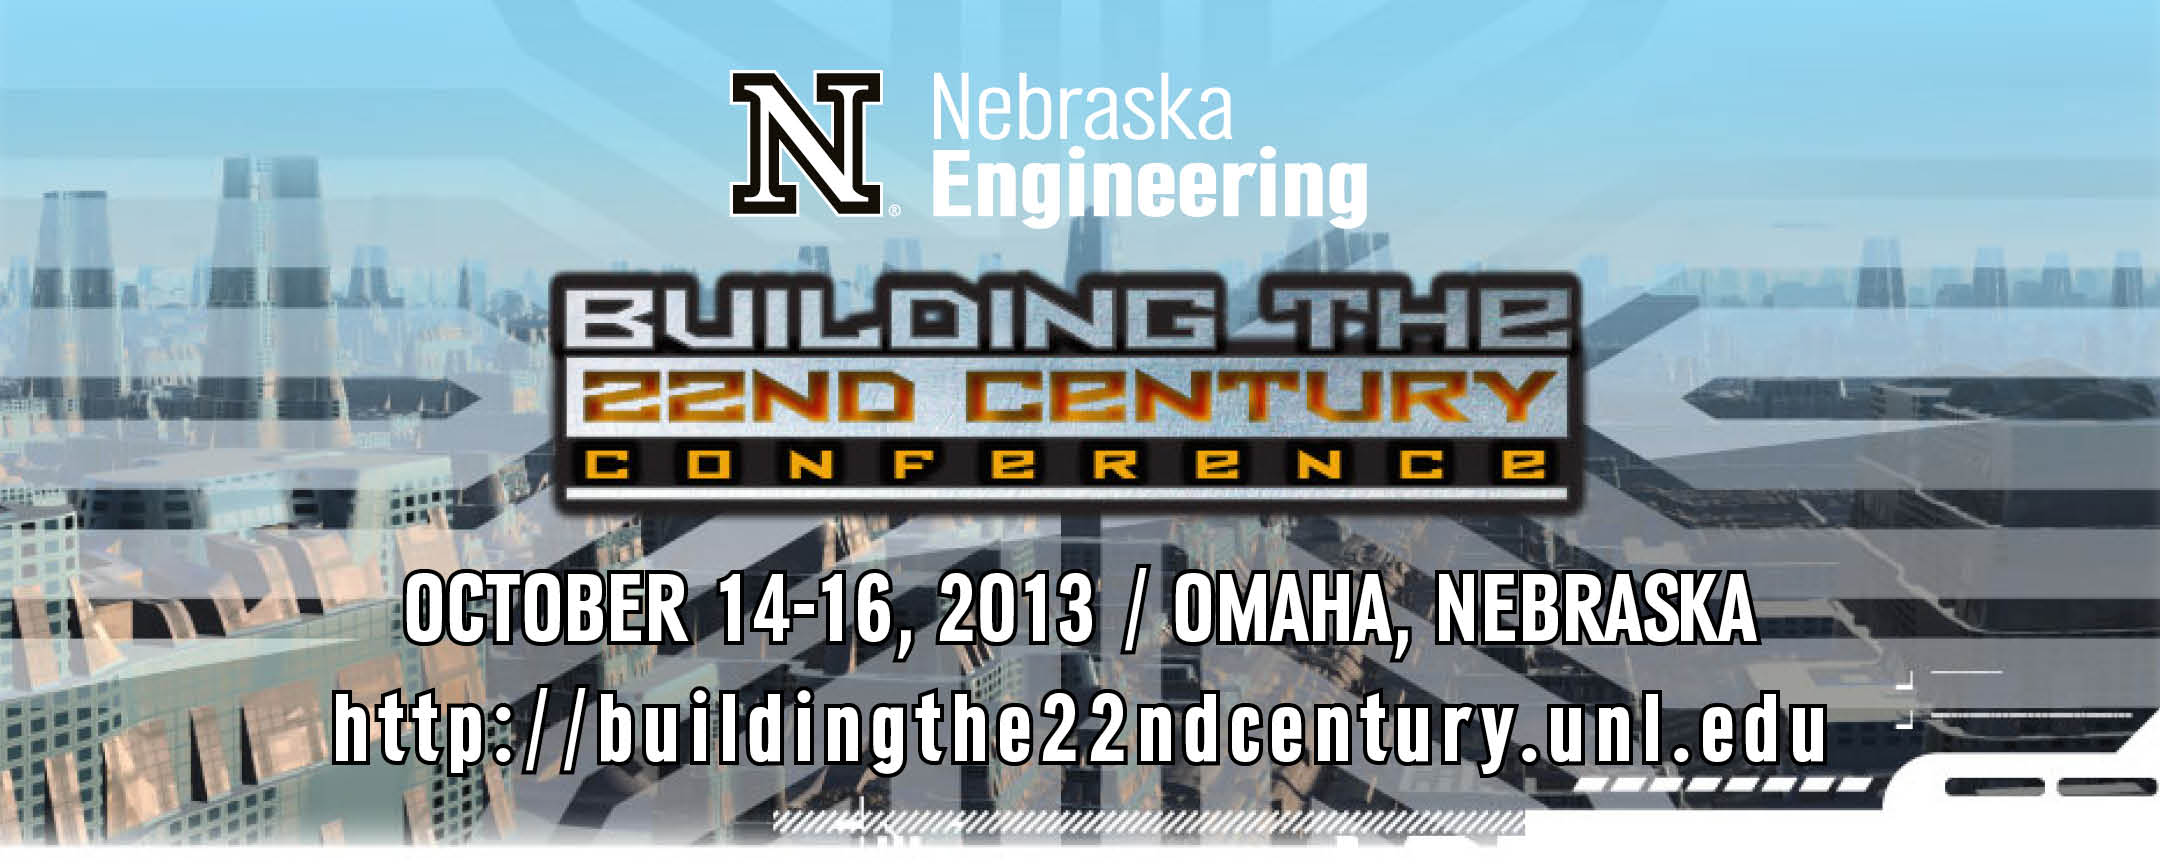 'Building the 22nd Century' conference, Oct. 14-16 in Omaha and Lincoln, offers discount rate for UNL